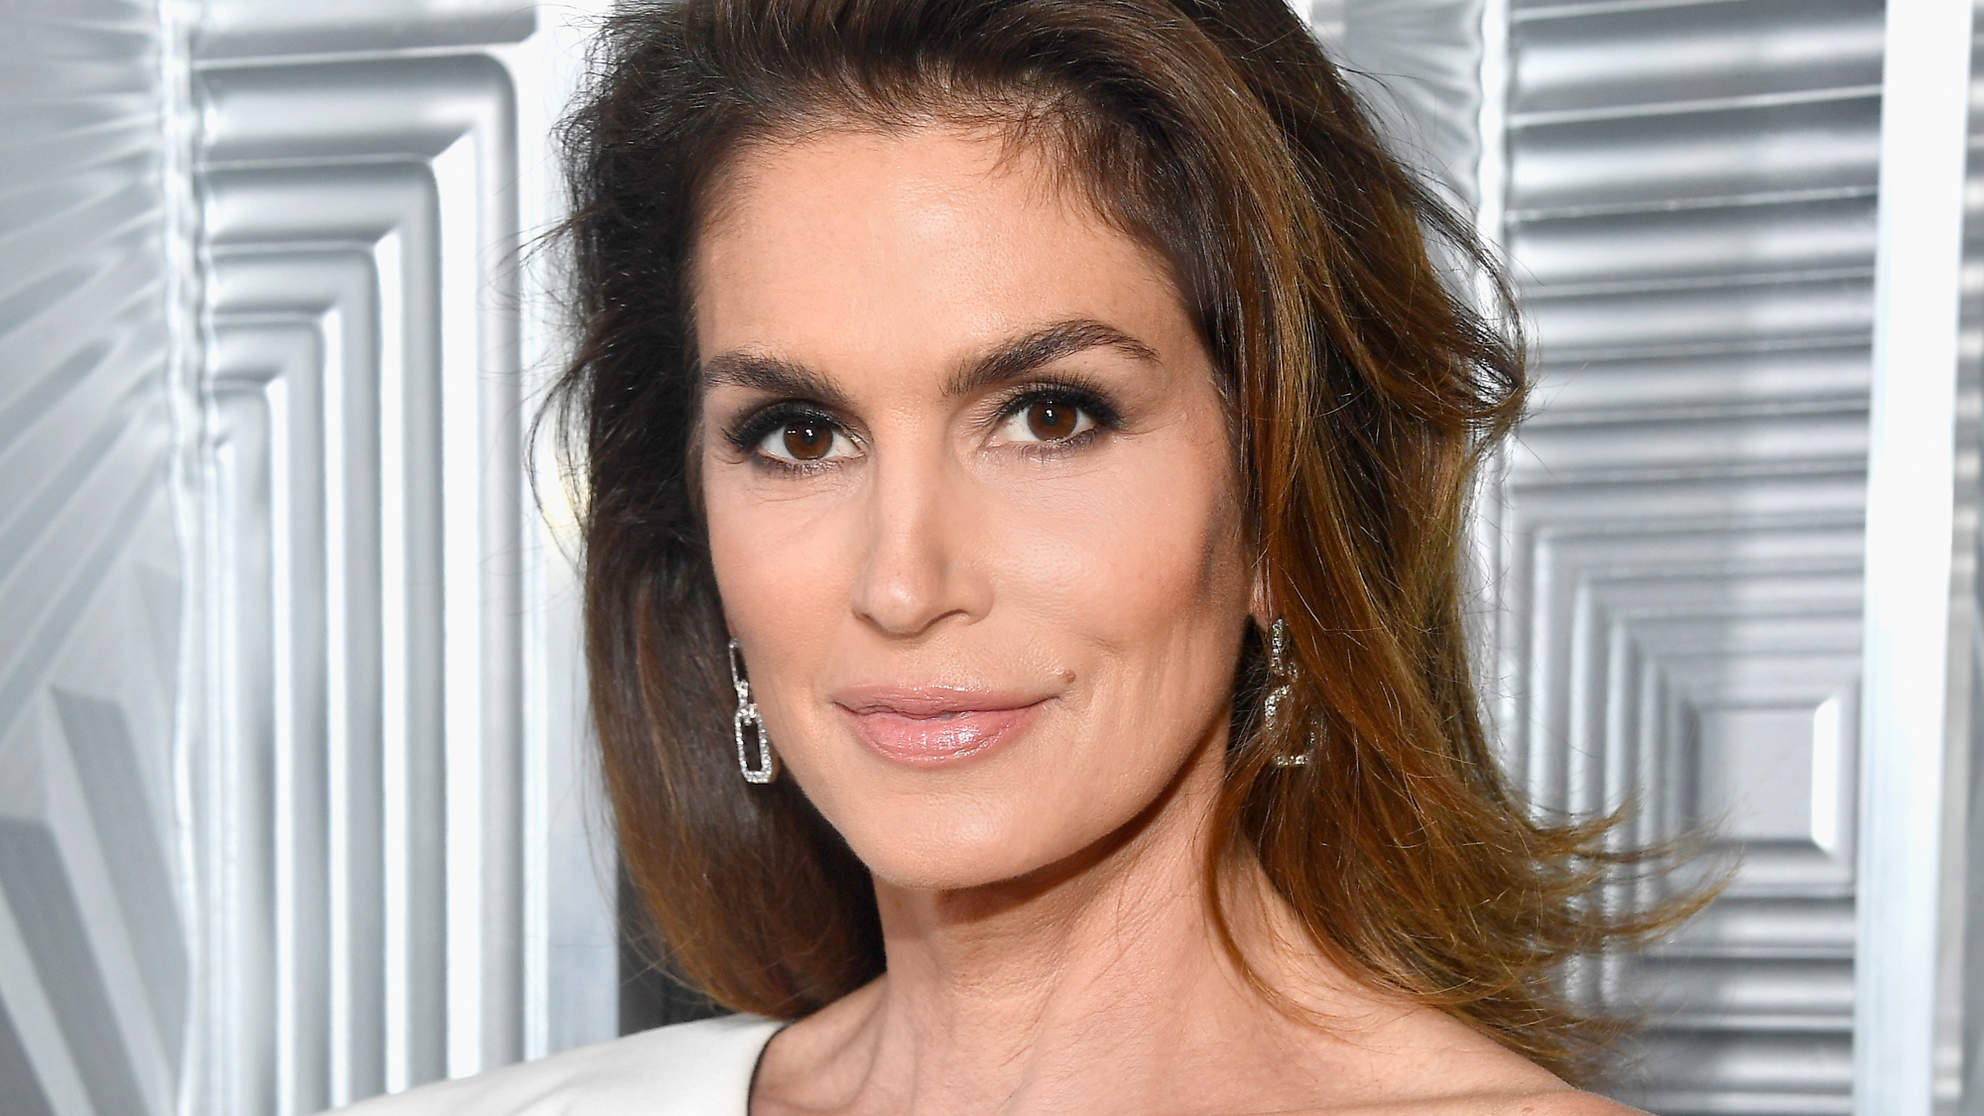 Cindy Crawford Gets Candid AboutAging and the Pitfallsof Modeling